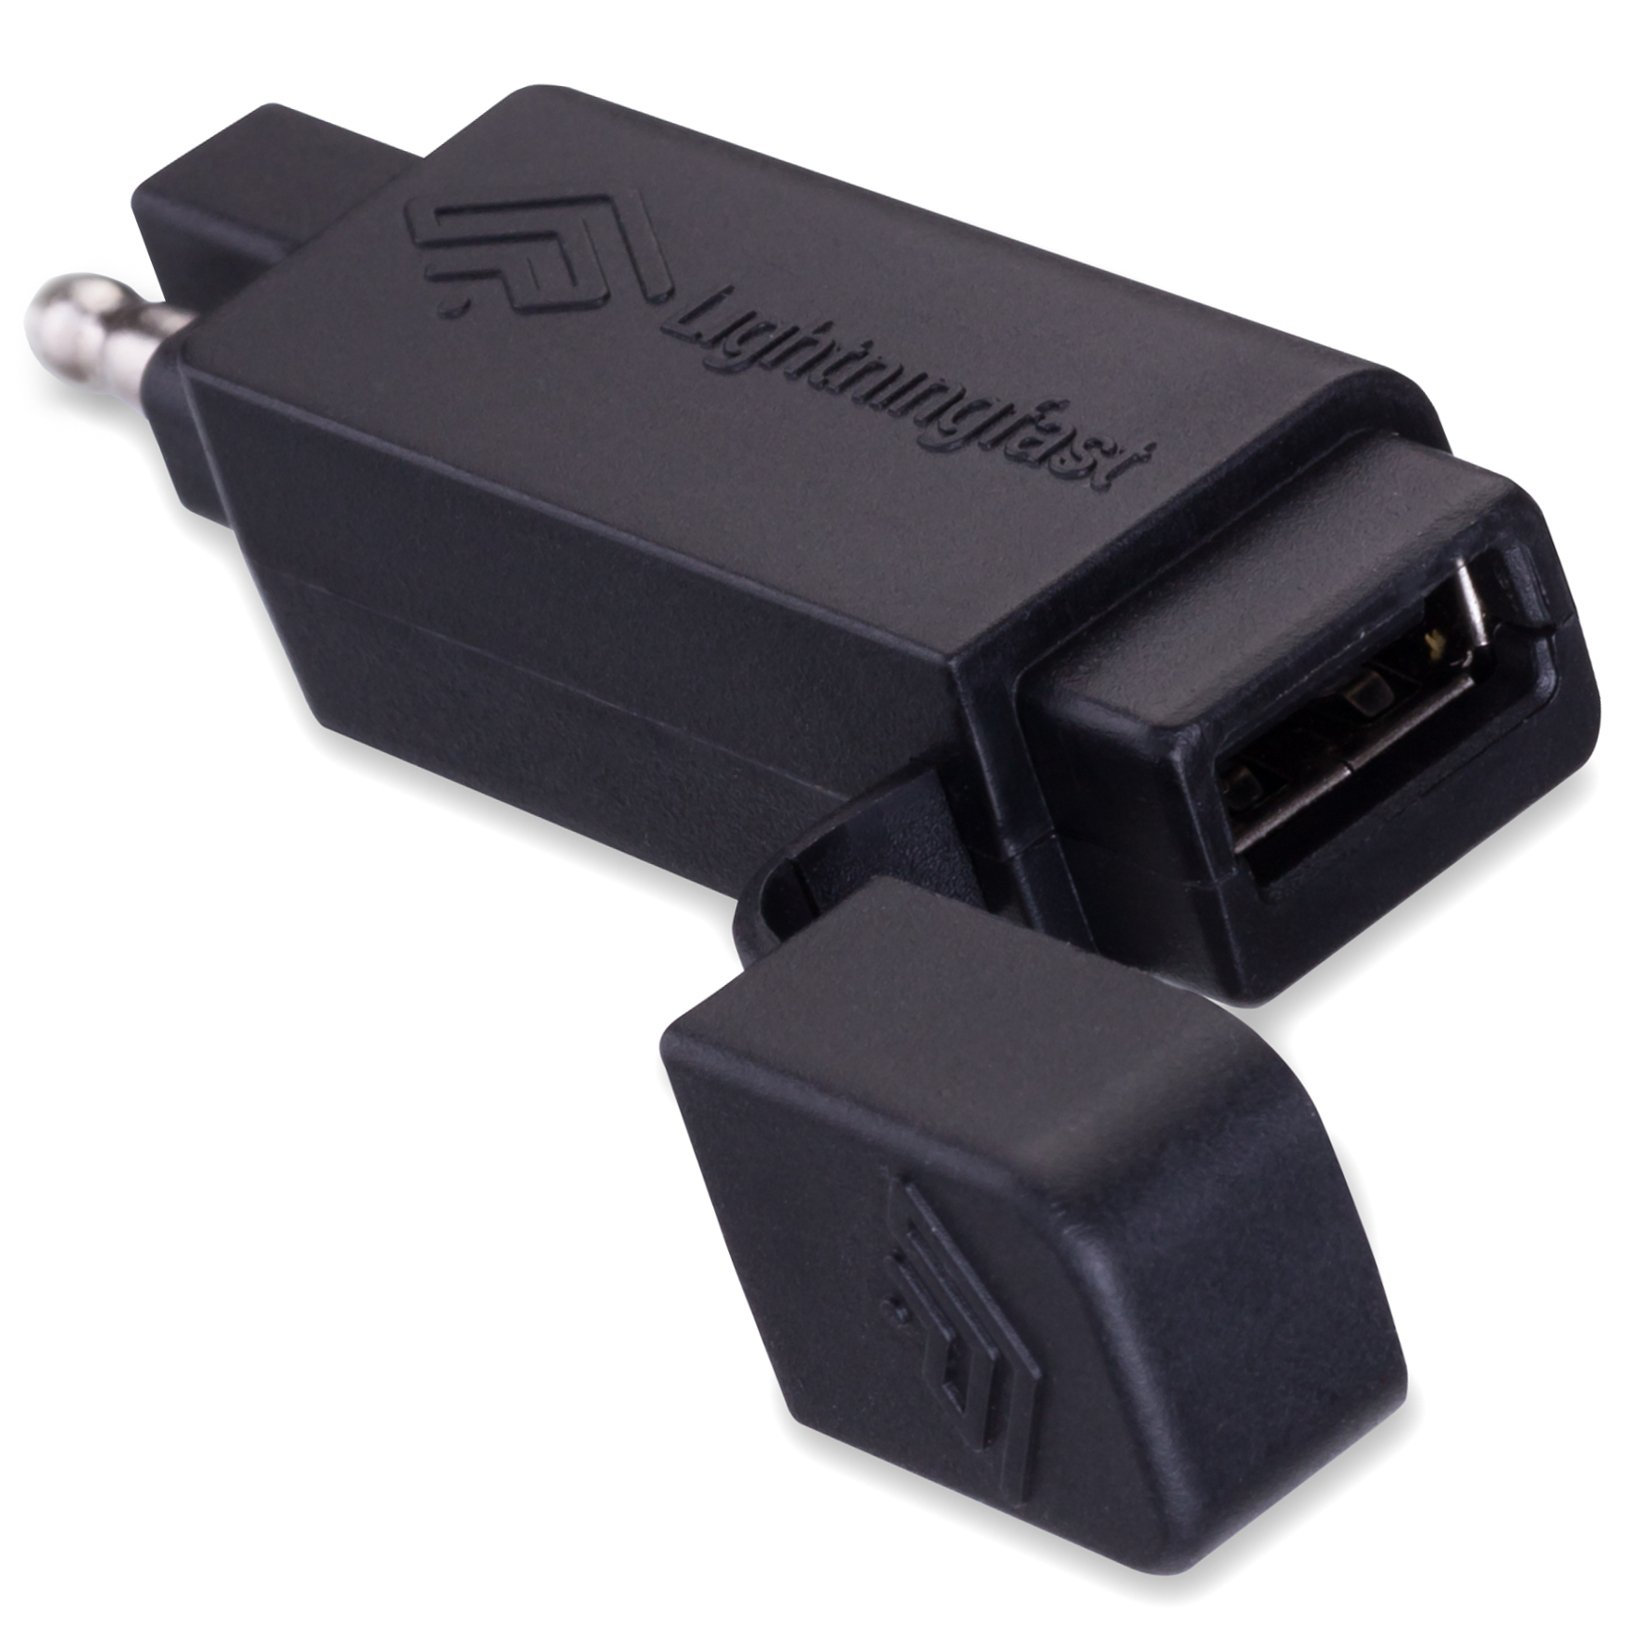 Sae To Usb Wiring Motorcycle Adapter Quick Disconnect Plug Cell Phone Charger Works With Apple